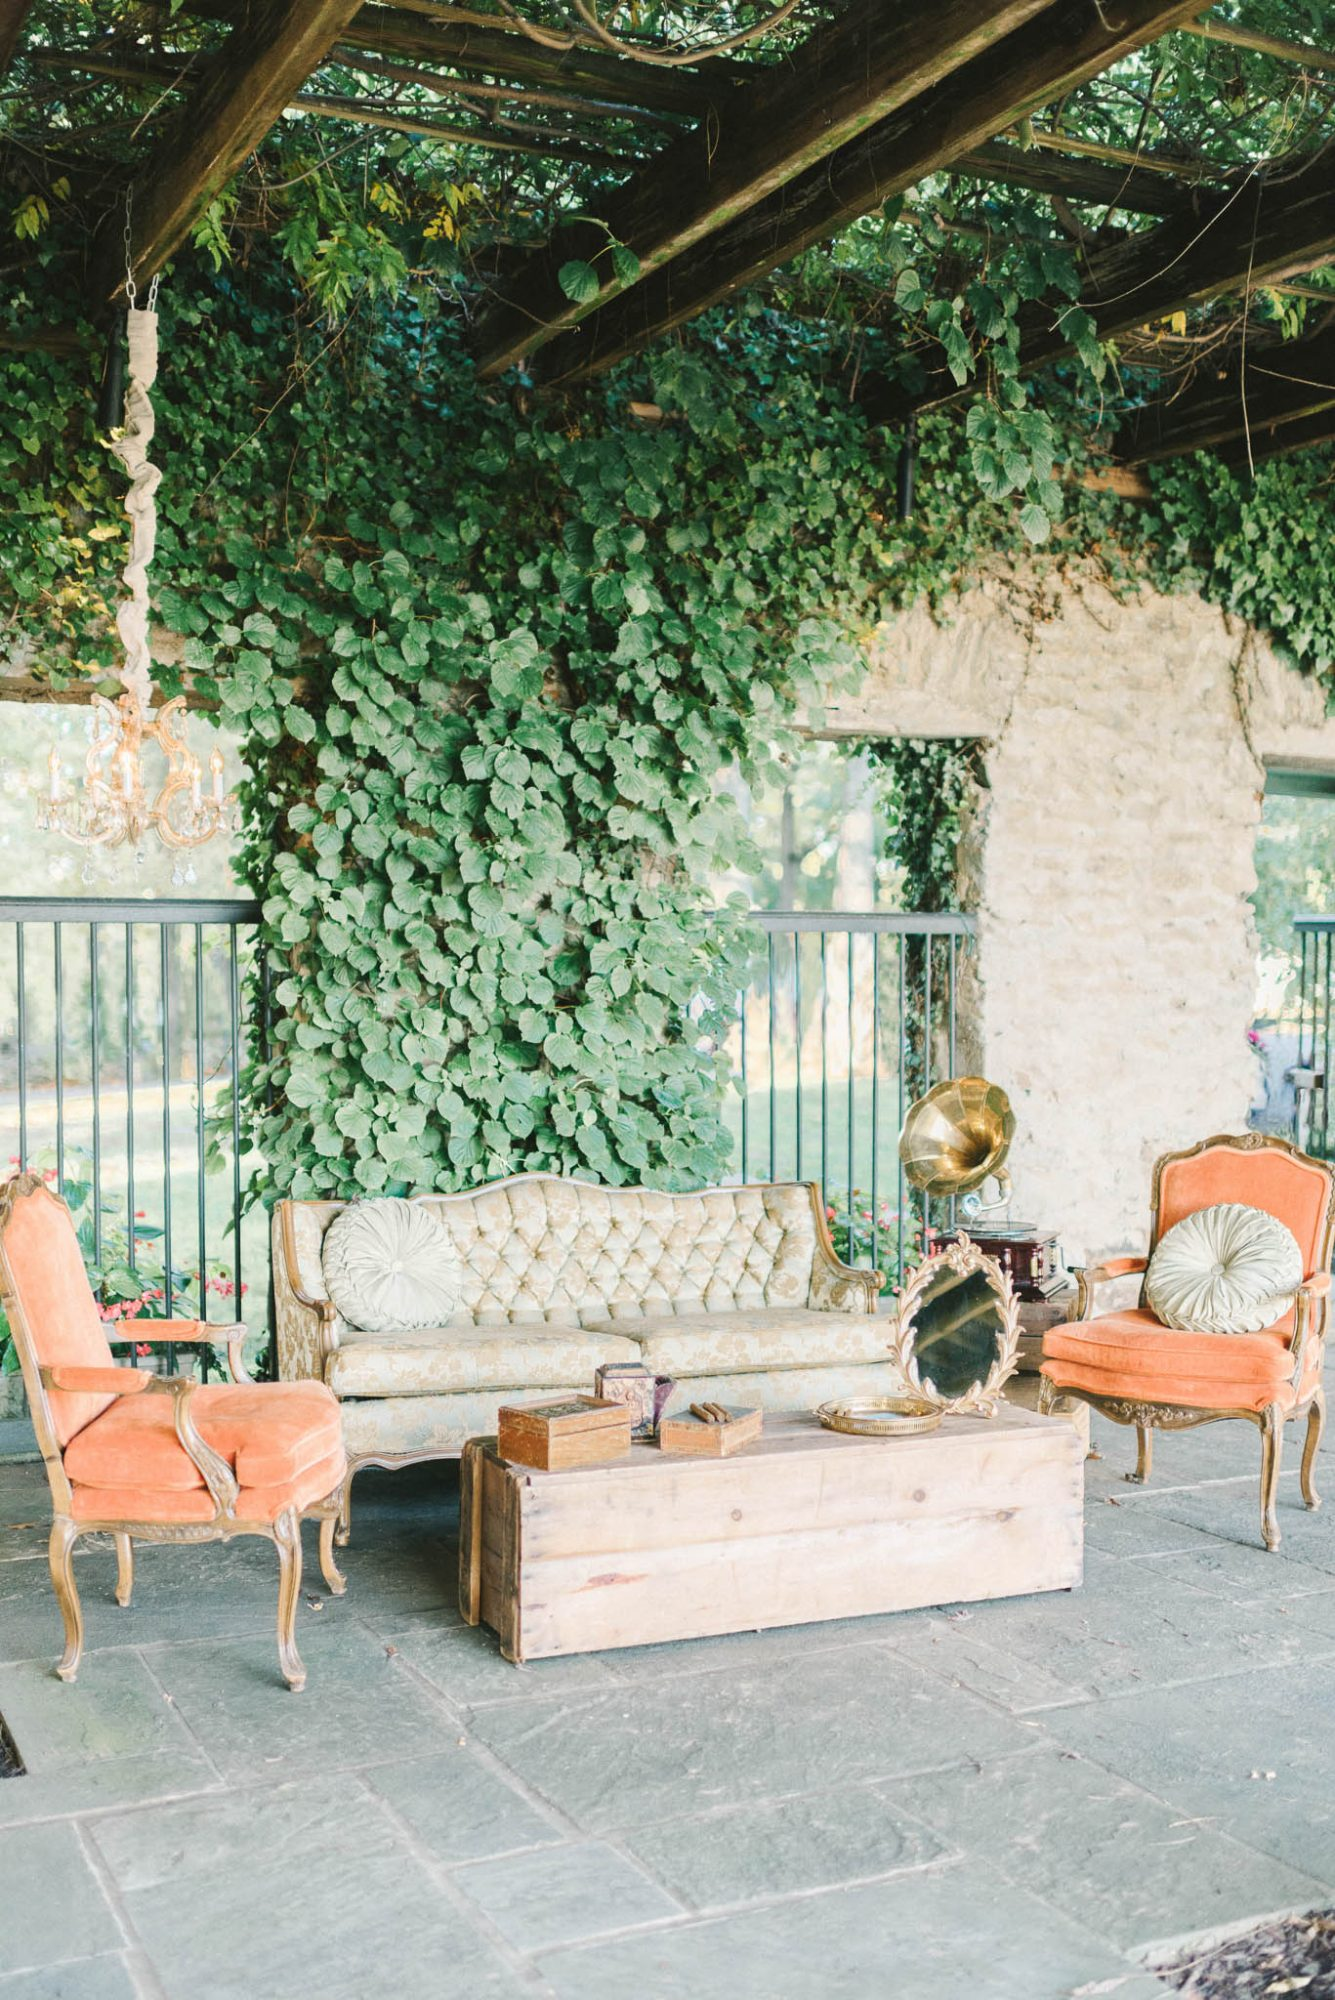 wedding lounge orange and tan seating and greenery wall